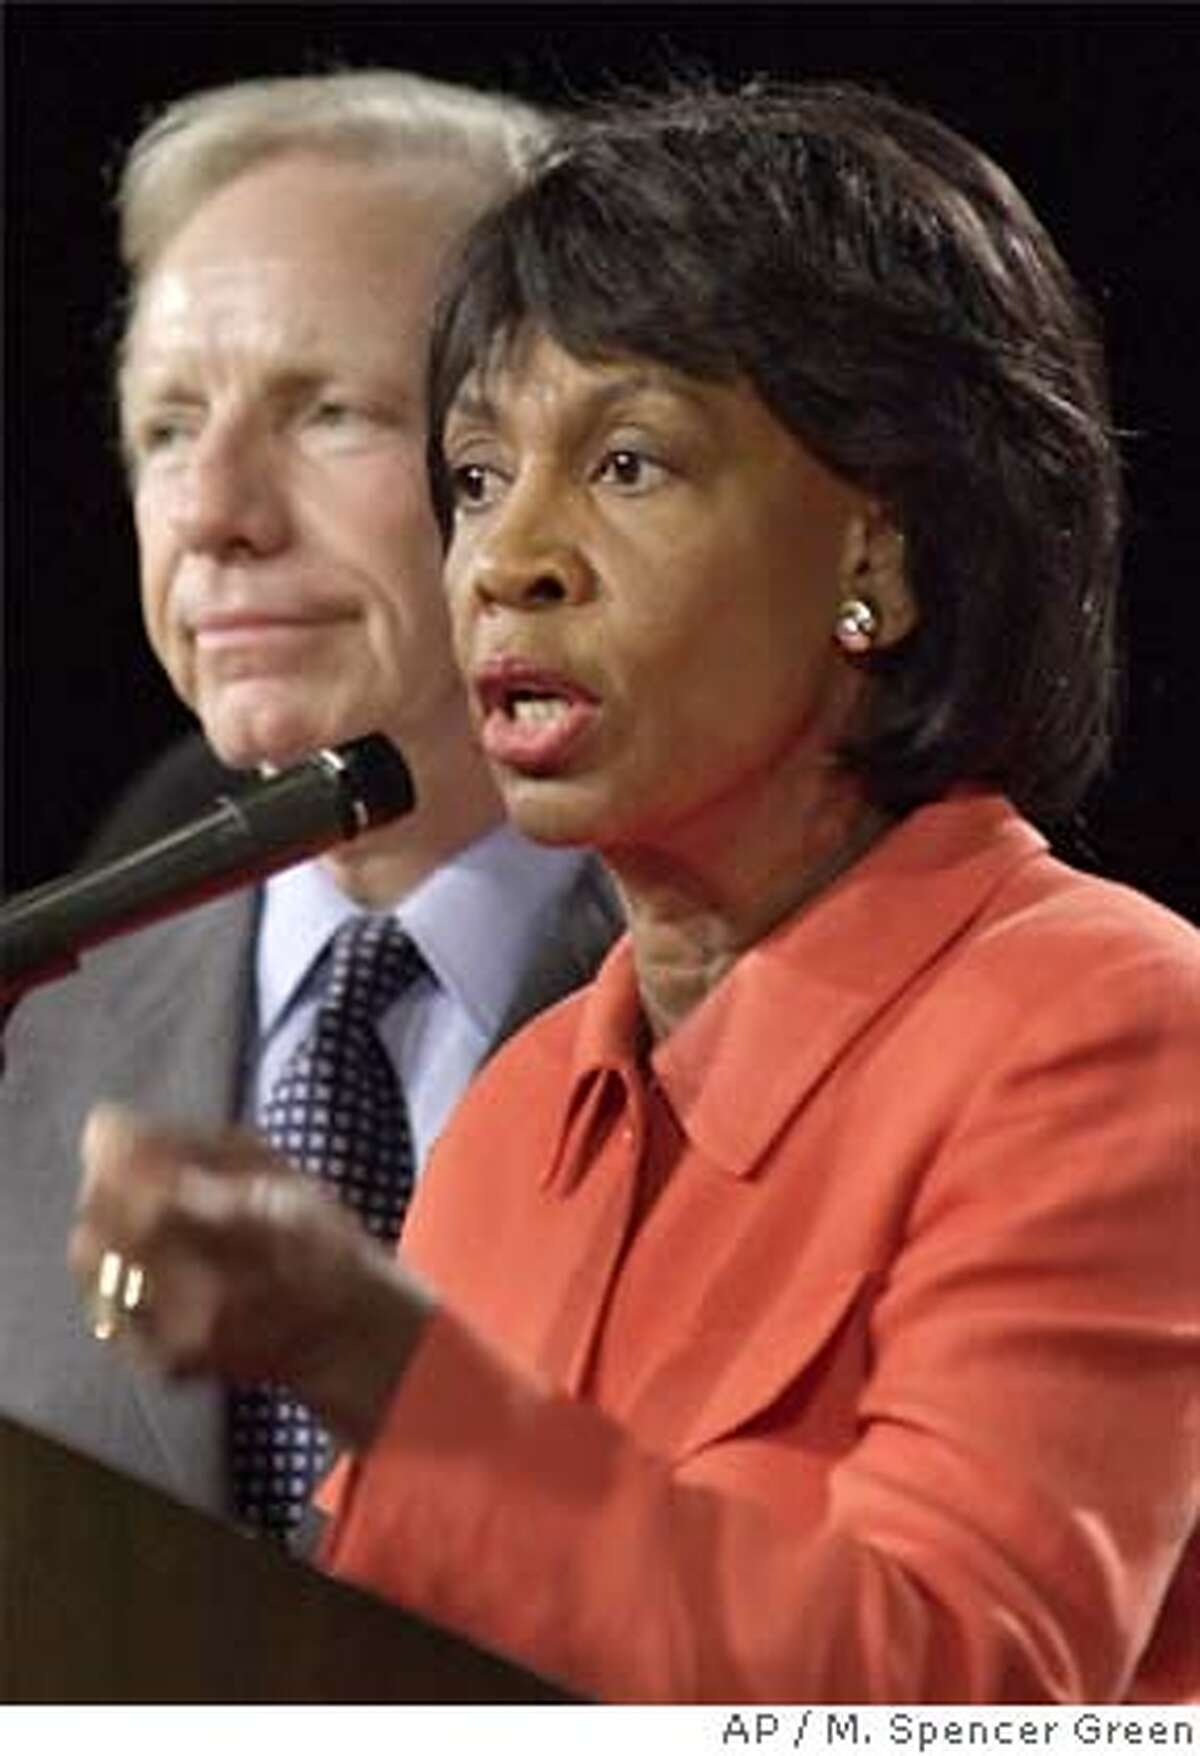 Democratic vice presidential hopeful Sen. Joseph Lieberman stands with Rep. Maxine Waters, D-Calif., as she addresses the Democratic National Committee's African-American Caucus Tuesday, August, 15, 2000, at the Democratic National Convention in Los Angeles. Lieberman spoke to the group and led them in singing happy birthday to the Waters.(AP Photo/M. Spencer Green) Ran on: 07-01-2005 Rep. Richard Pombo Ran on: 07-01-2005 Rep. Richard Pombo Ran on: 07-01-2005 Rep. Richard Pombo CAT